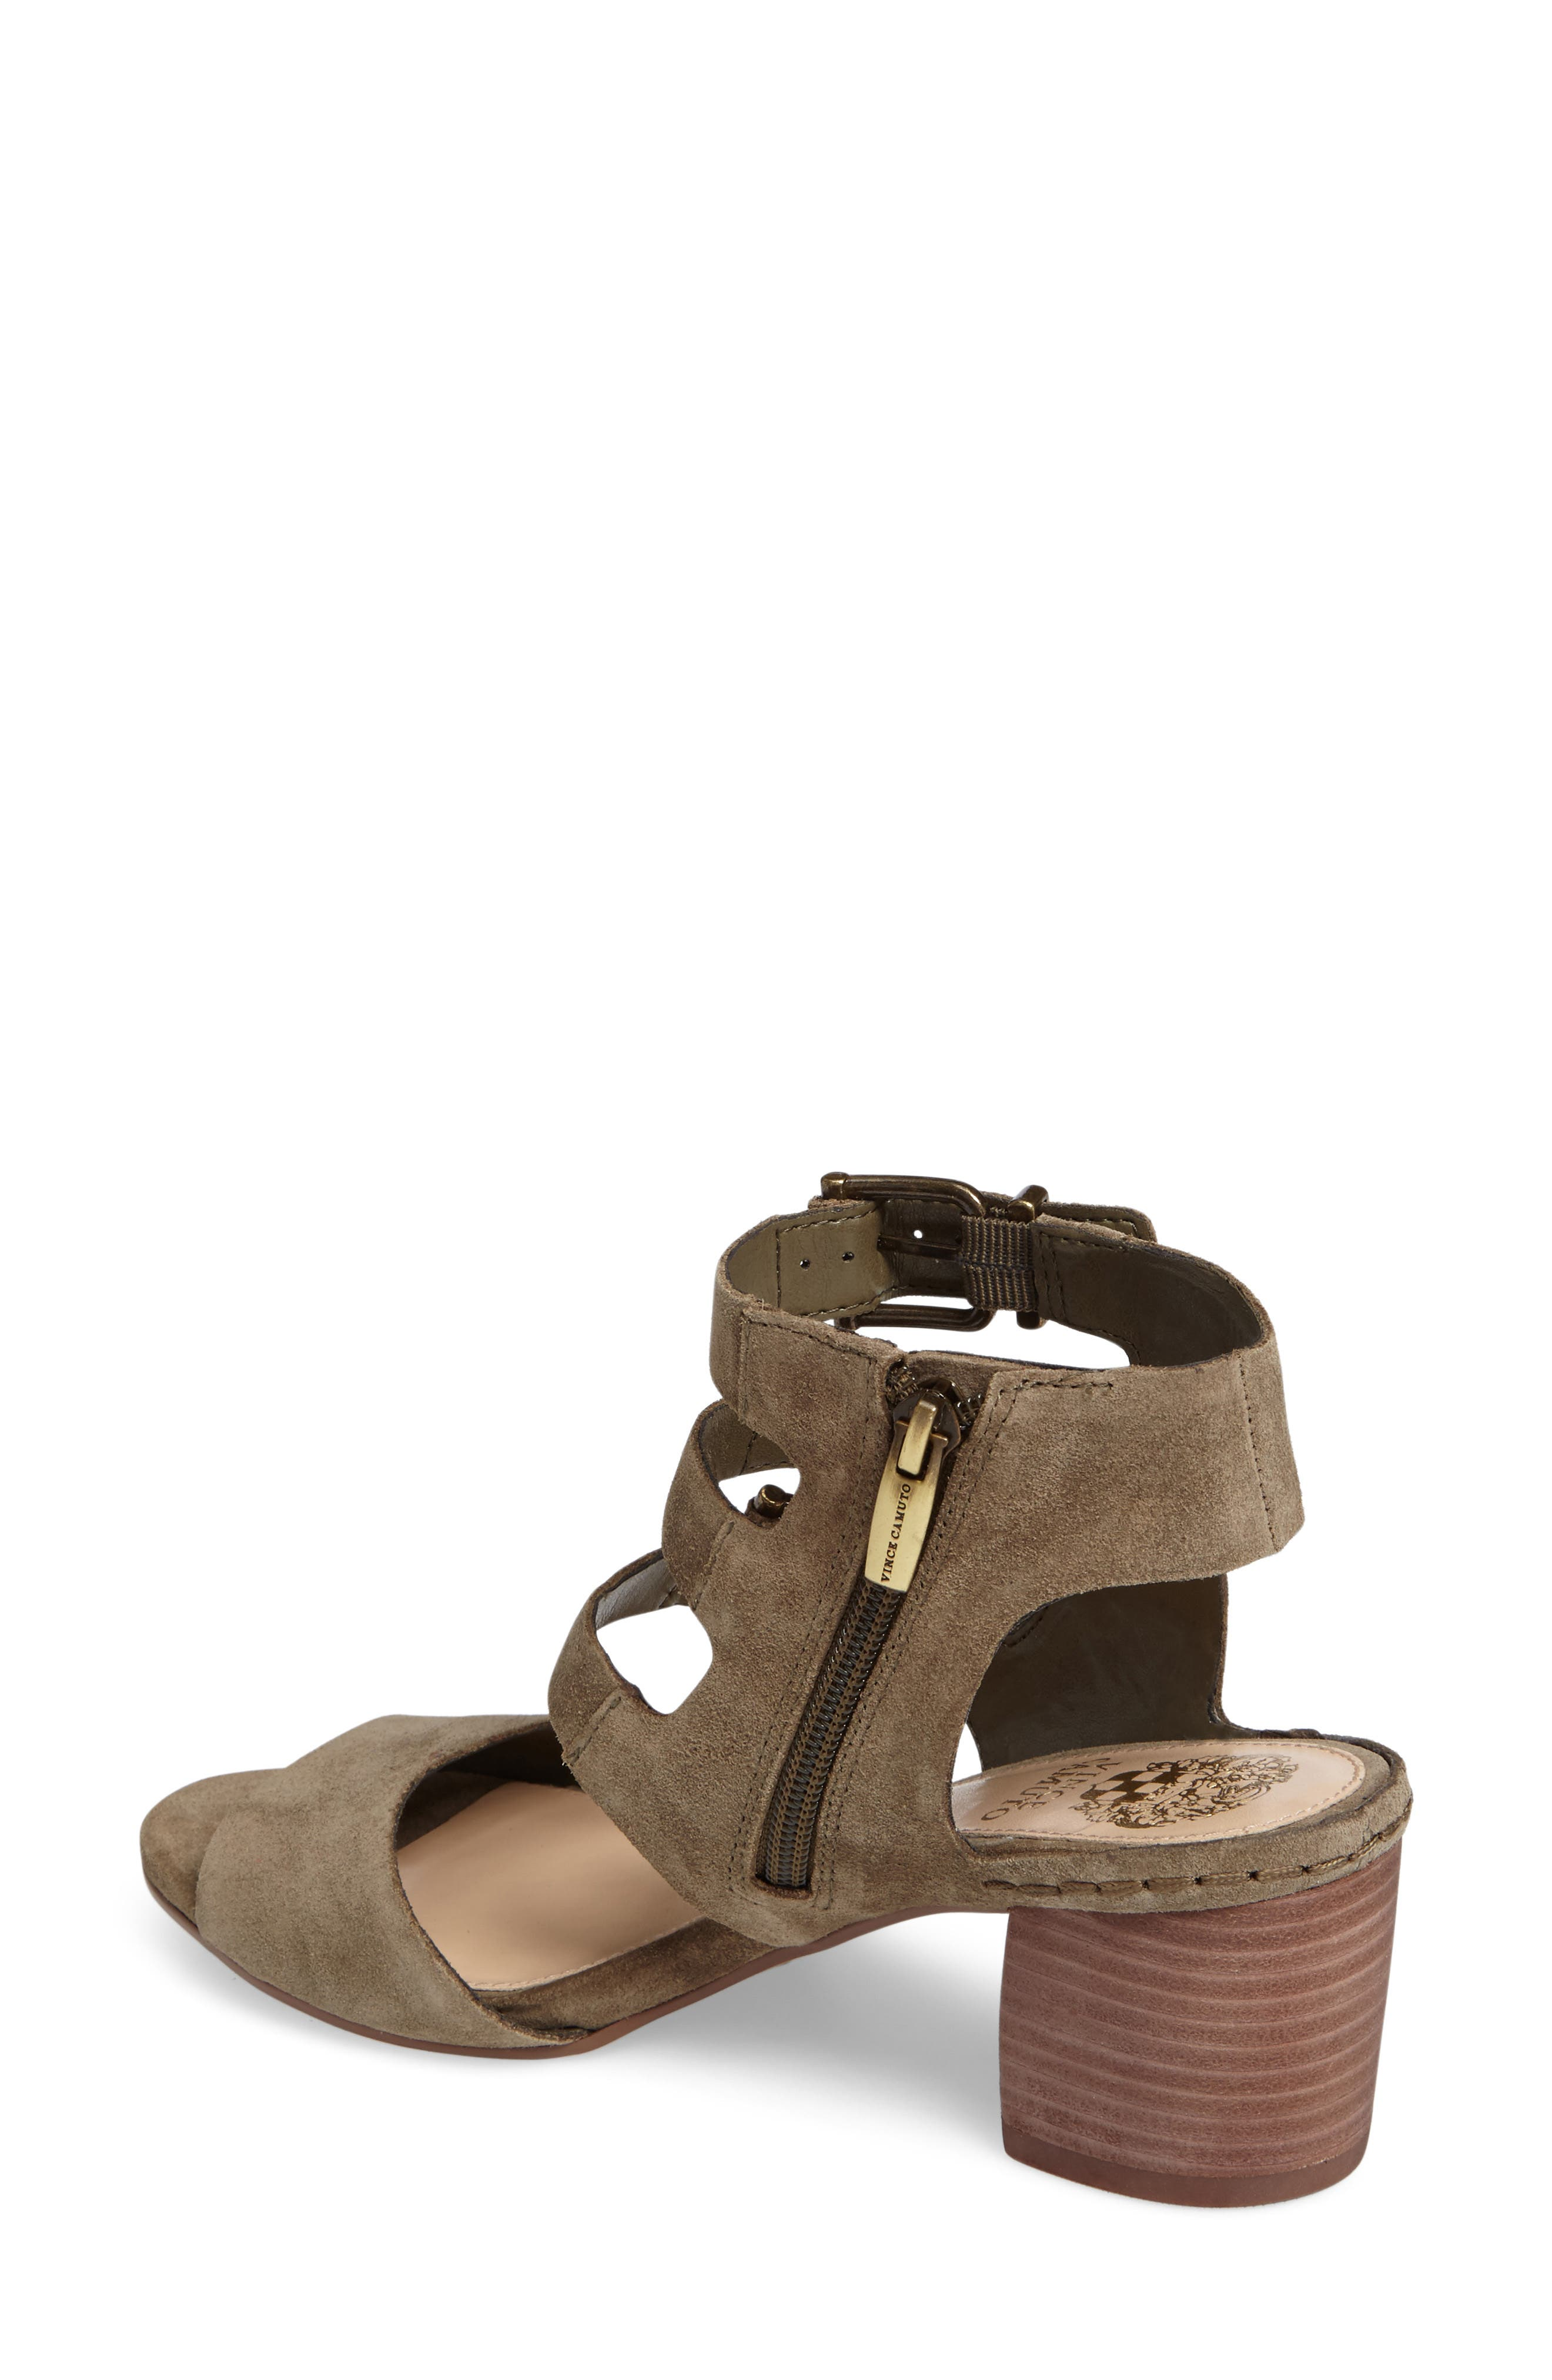 Geriann Strappy Slingback Sandal,                             Alternate thumbnail 2, color,                             Truffle Suede